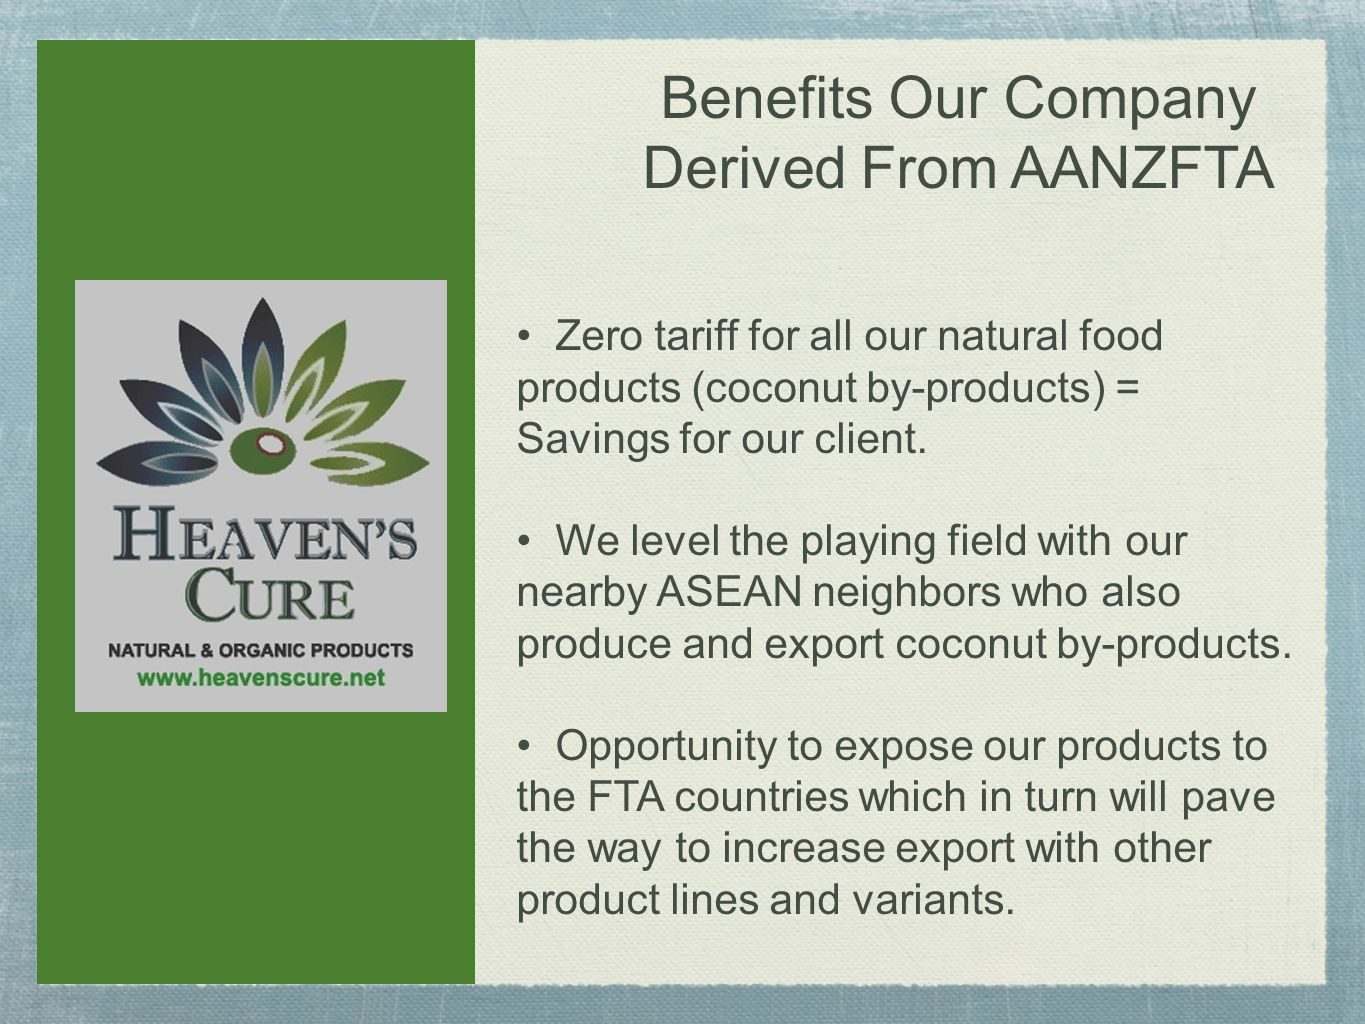 Benefits Our Company Derived From AANZFTA Zero tariff for all our natural food products (coconut by-products) = Savings for our client.